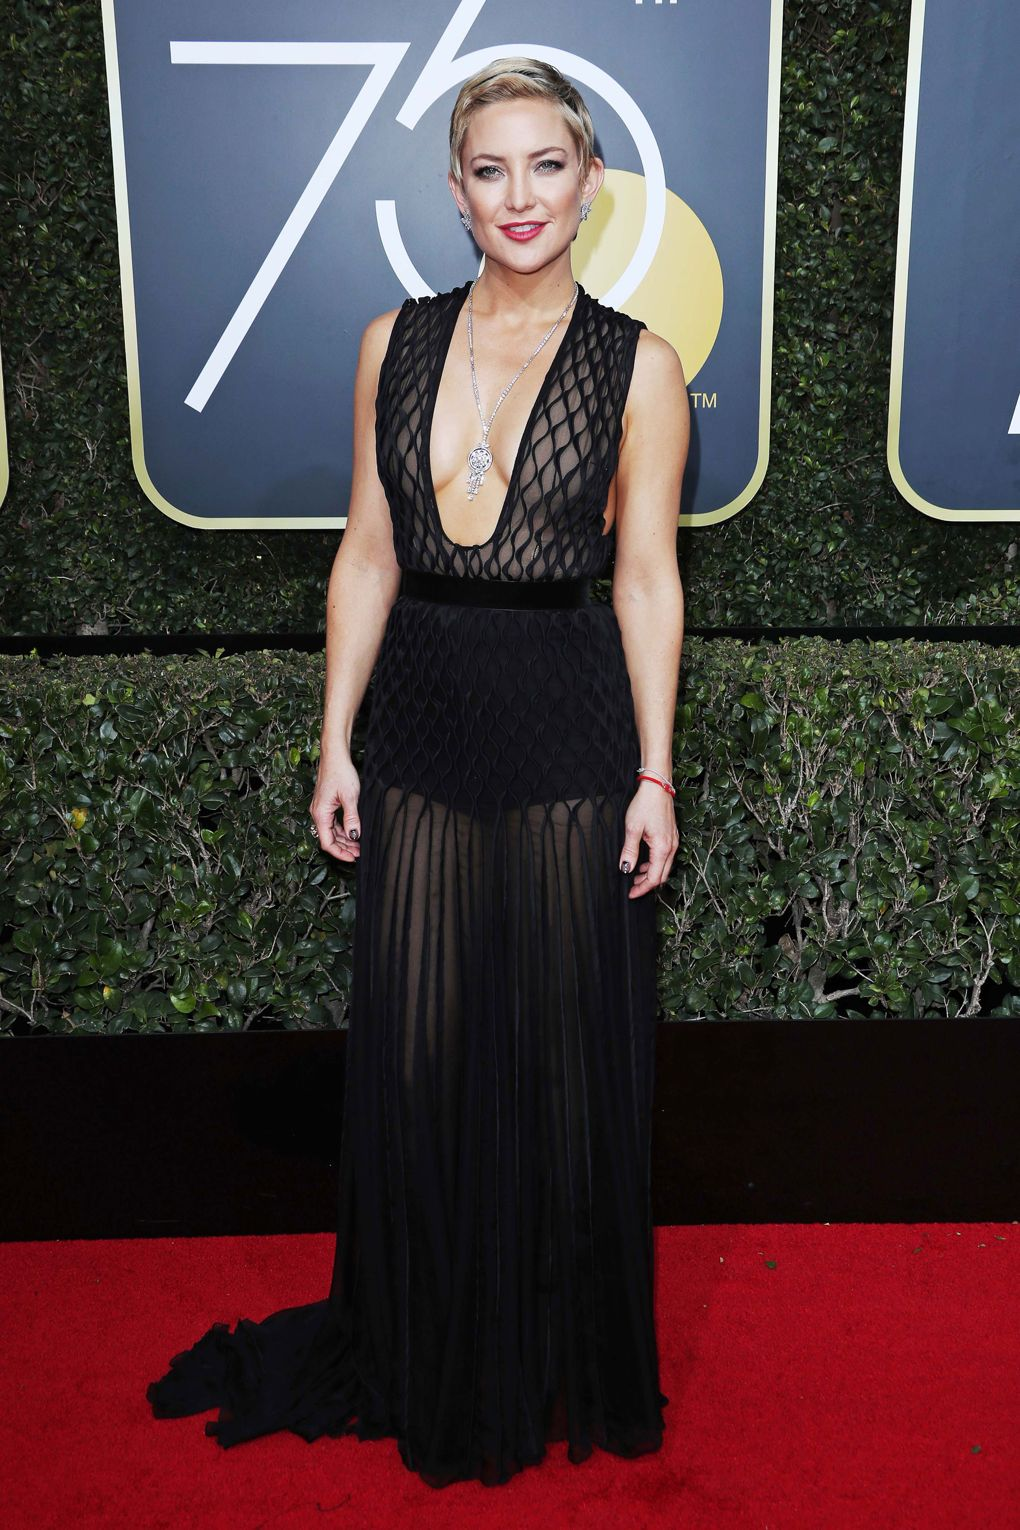 Golden Globes 2018 Red Carpet - Kate Hudson in Valentino with Harry Winston jewelry - Photo credit Rex/Shutterstock - women empowerment - black dresses golden globes 2018 - times up